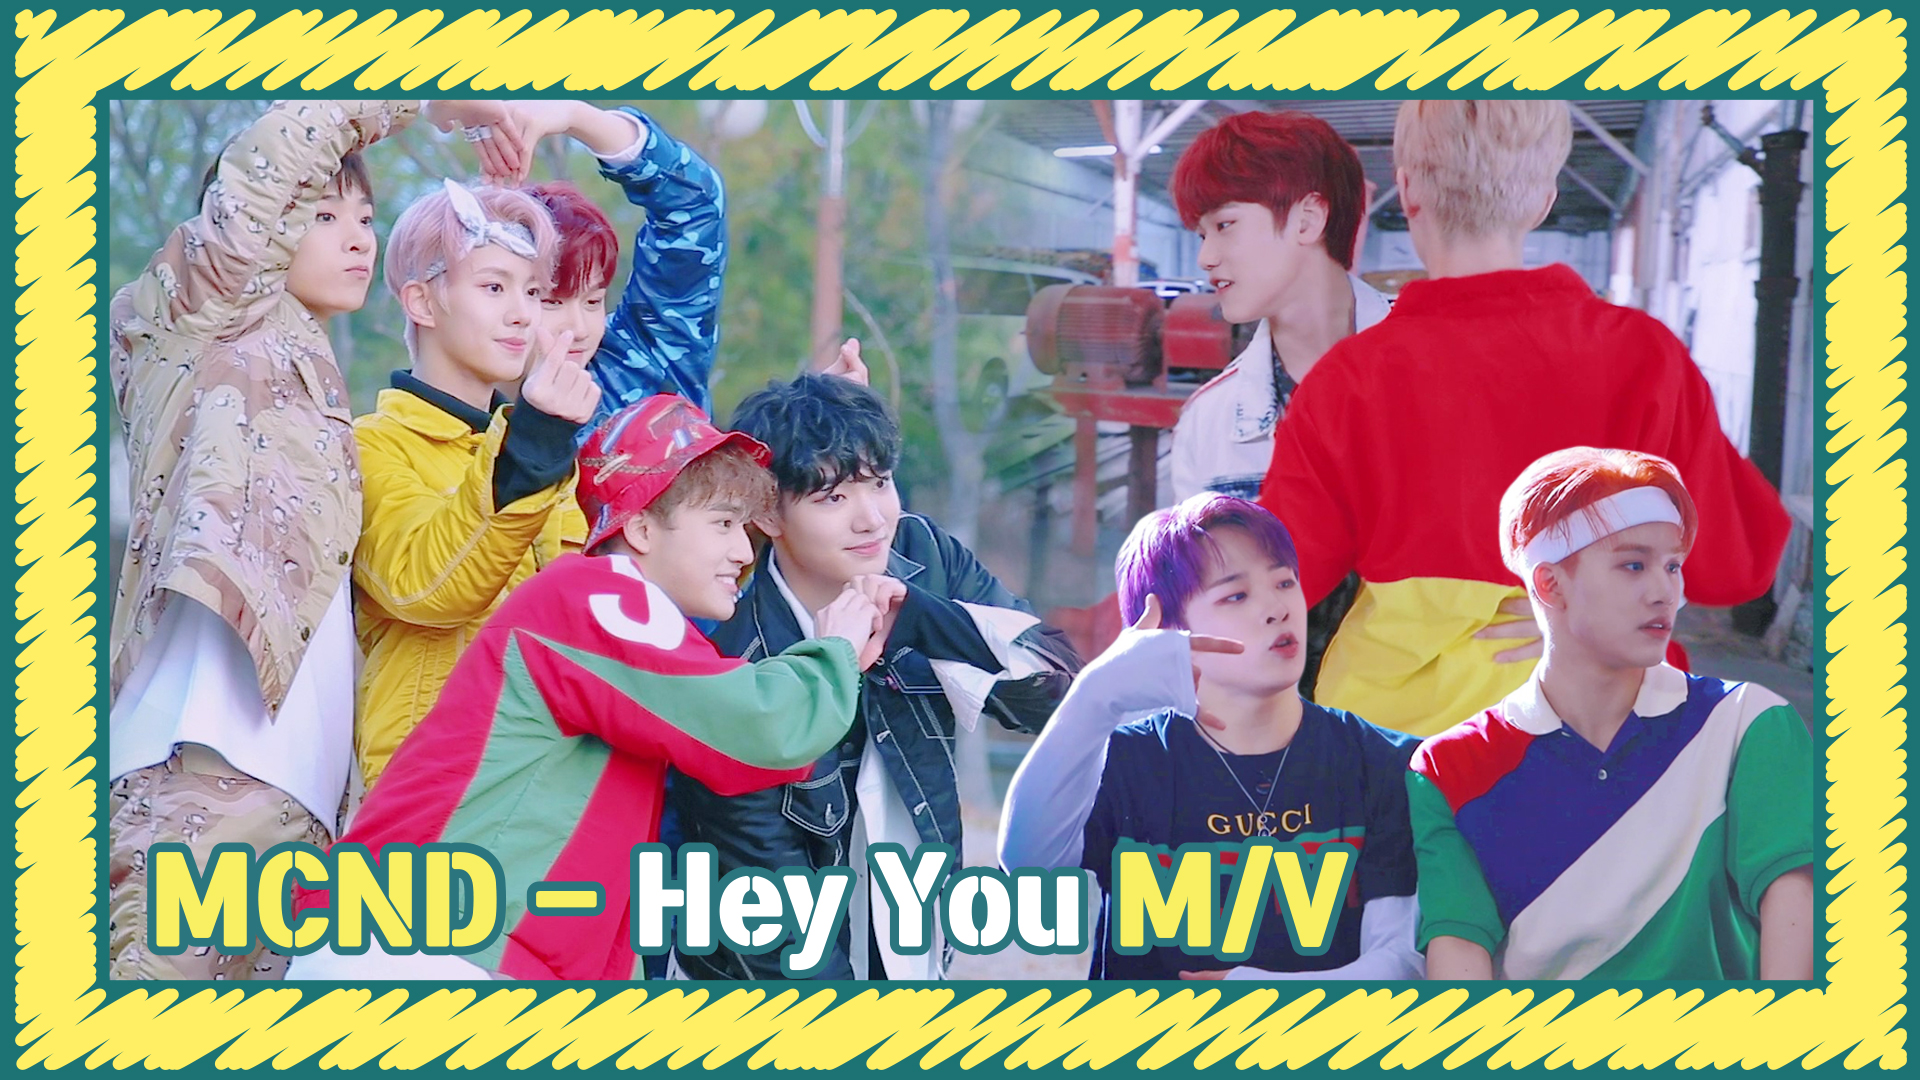 [Let's Play MCND] MCND - Hey You M/V